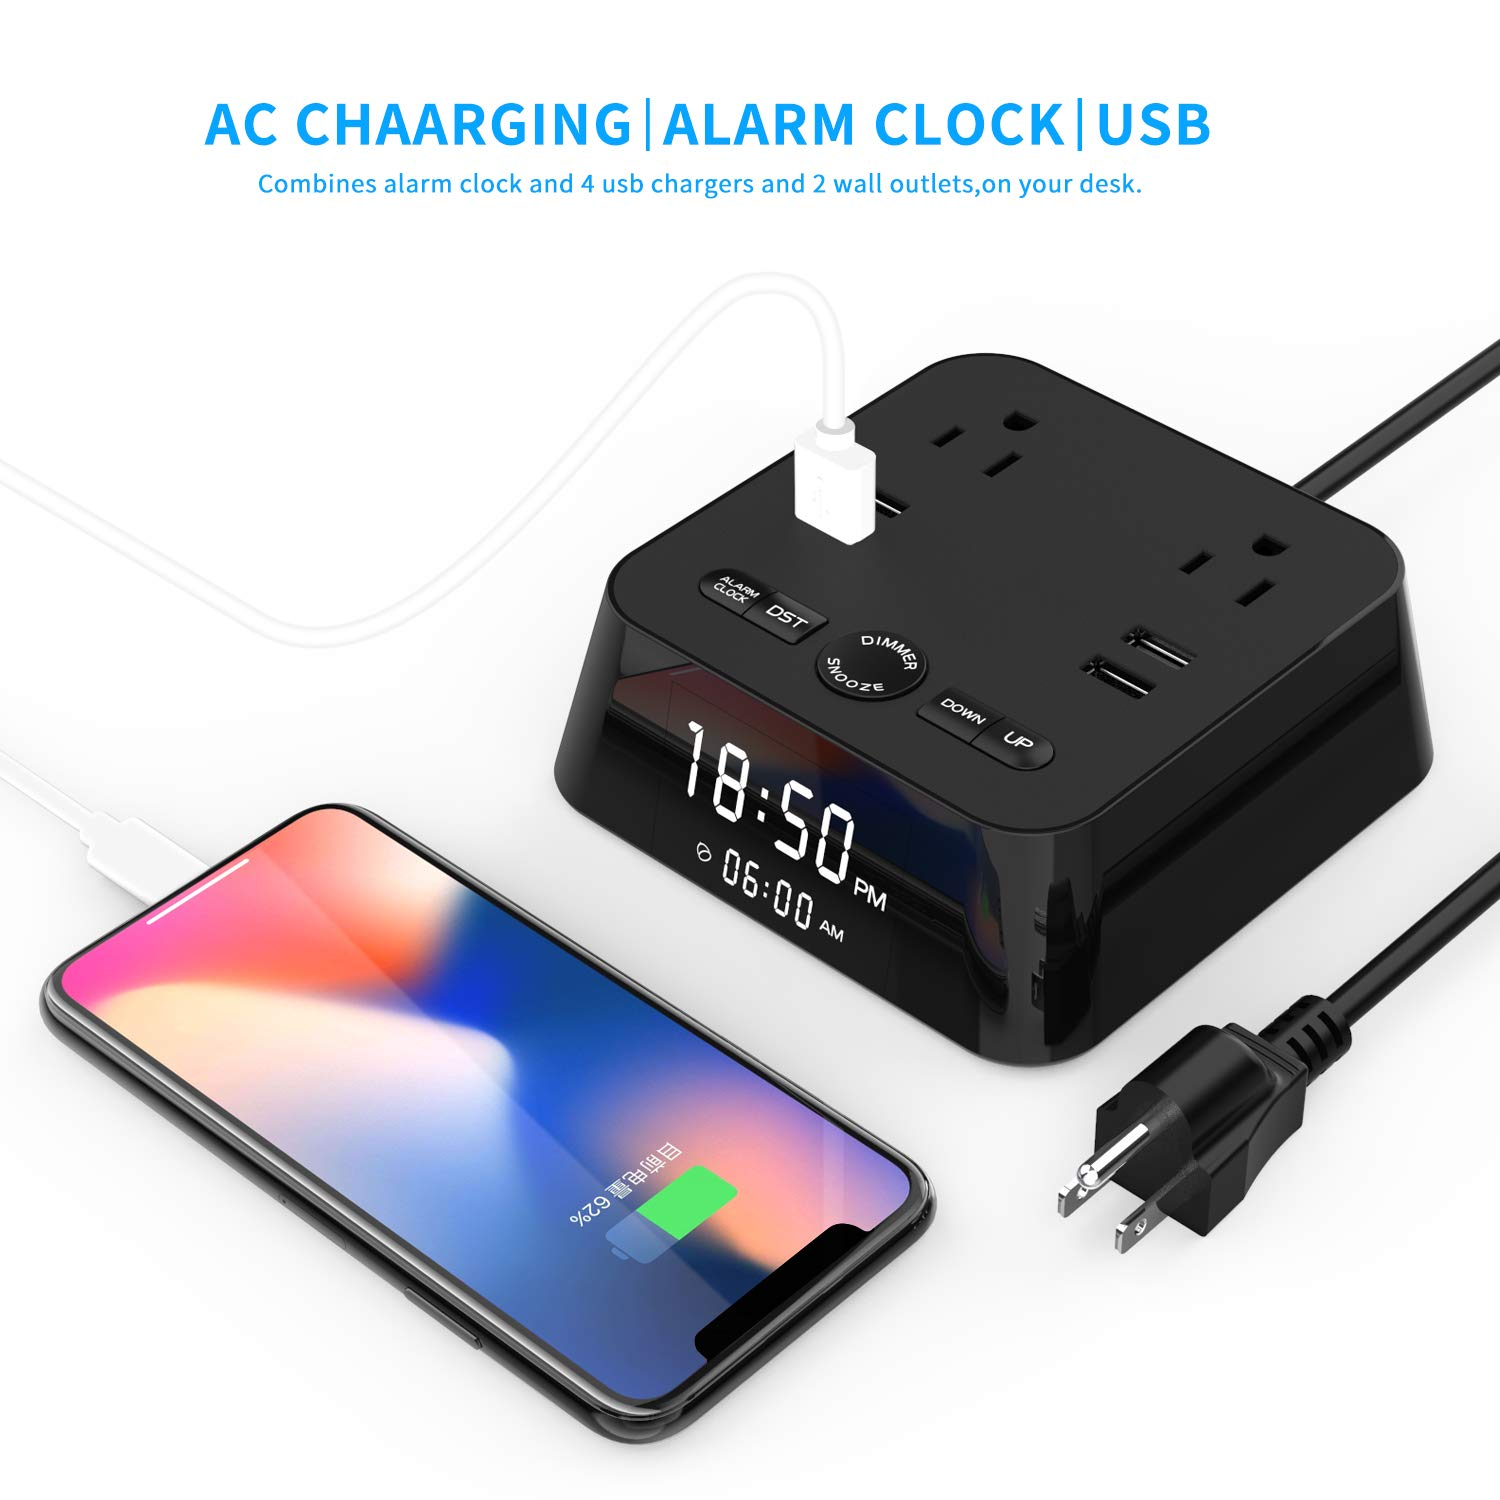 Ausein Alarm Clock Charger w/4 USB Ports & 2 AC Outlets, 6ft Power Cord Charging Station Power Strip for Hotel Home Office,UL Tested (4 Dimmer Brightness,Snooze,ON/Off Switch,DST Time,Battery Backup)